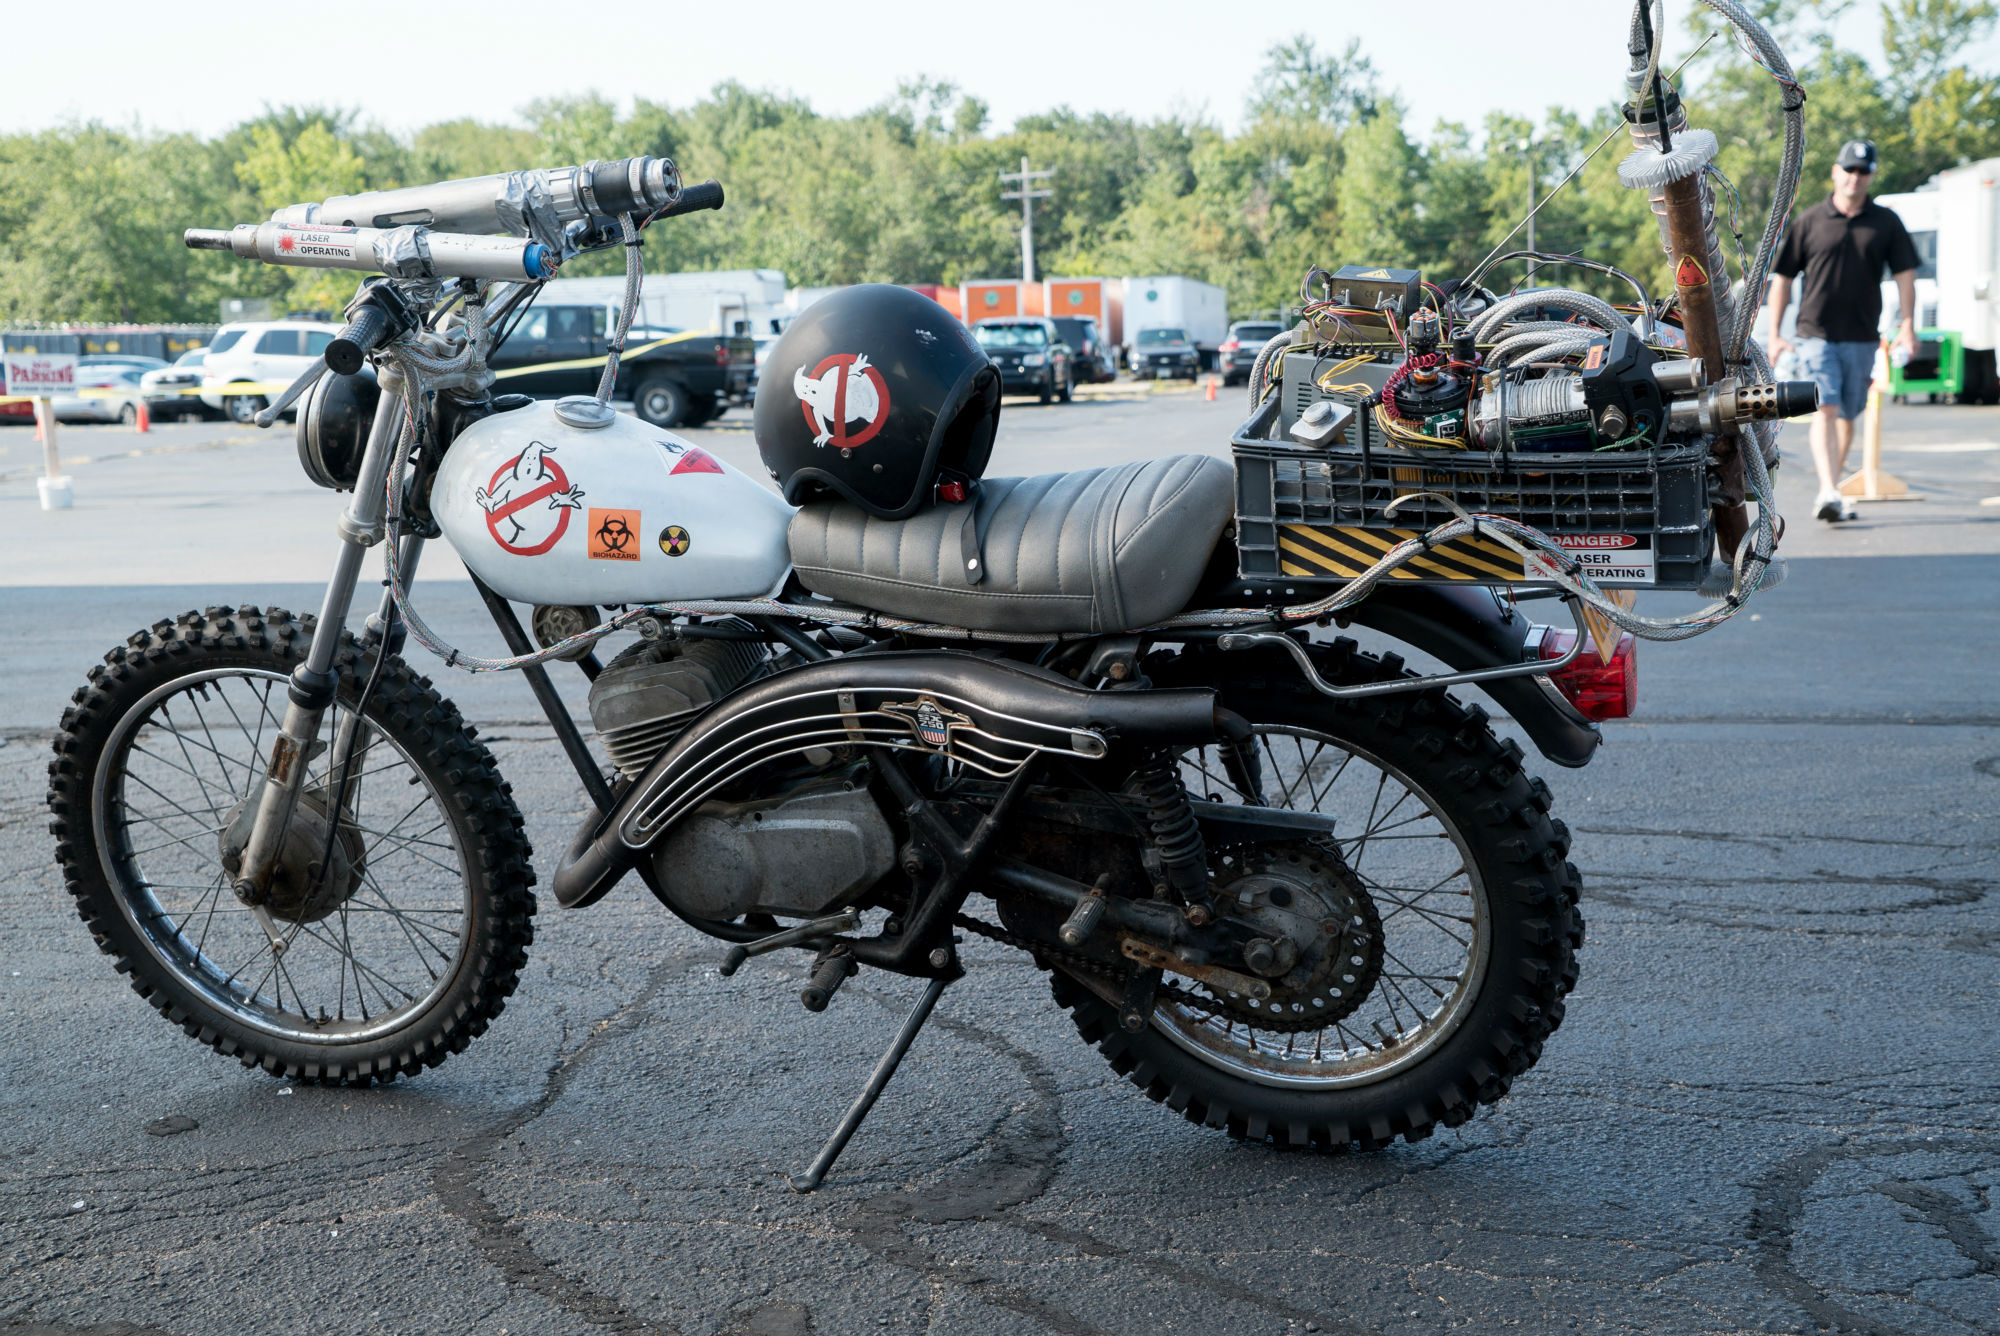 new-photo-of-the-ecto-2-motorcycle-from-ghostbusters